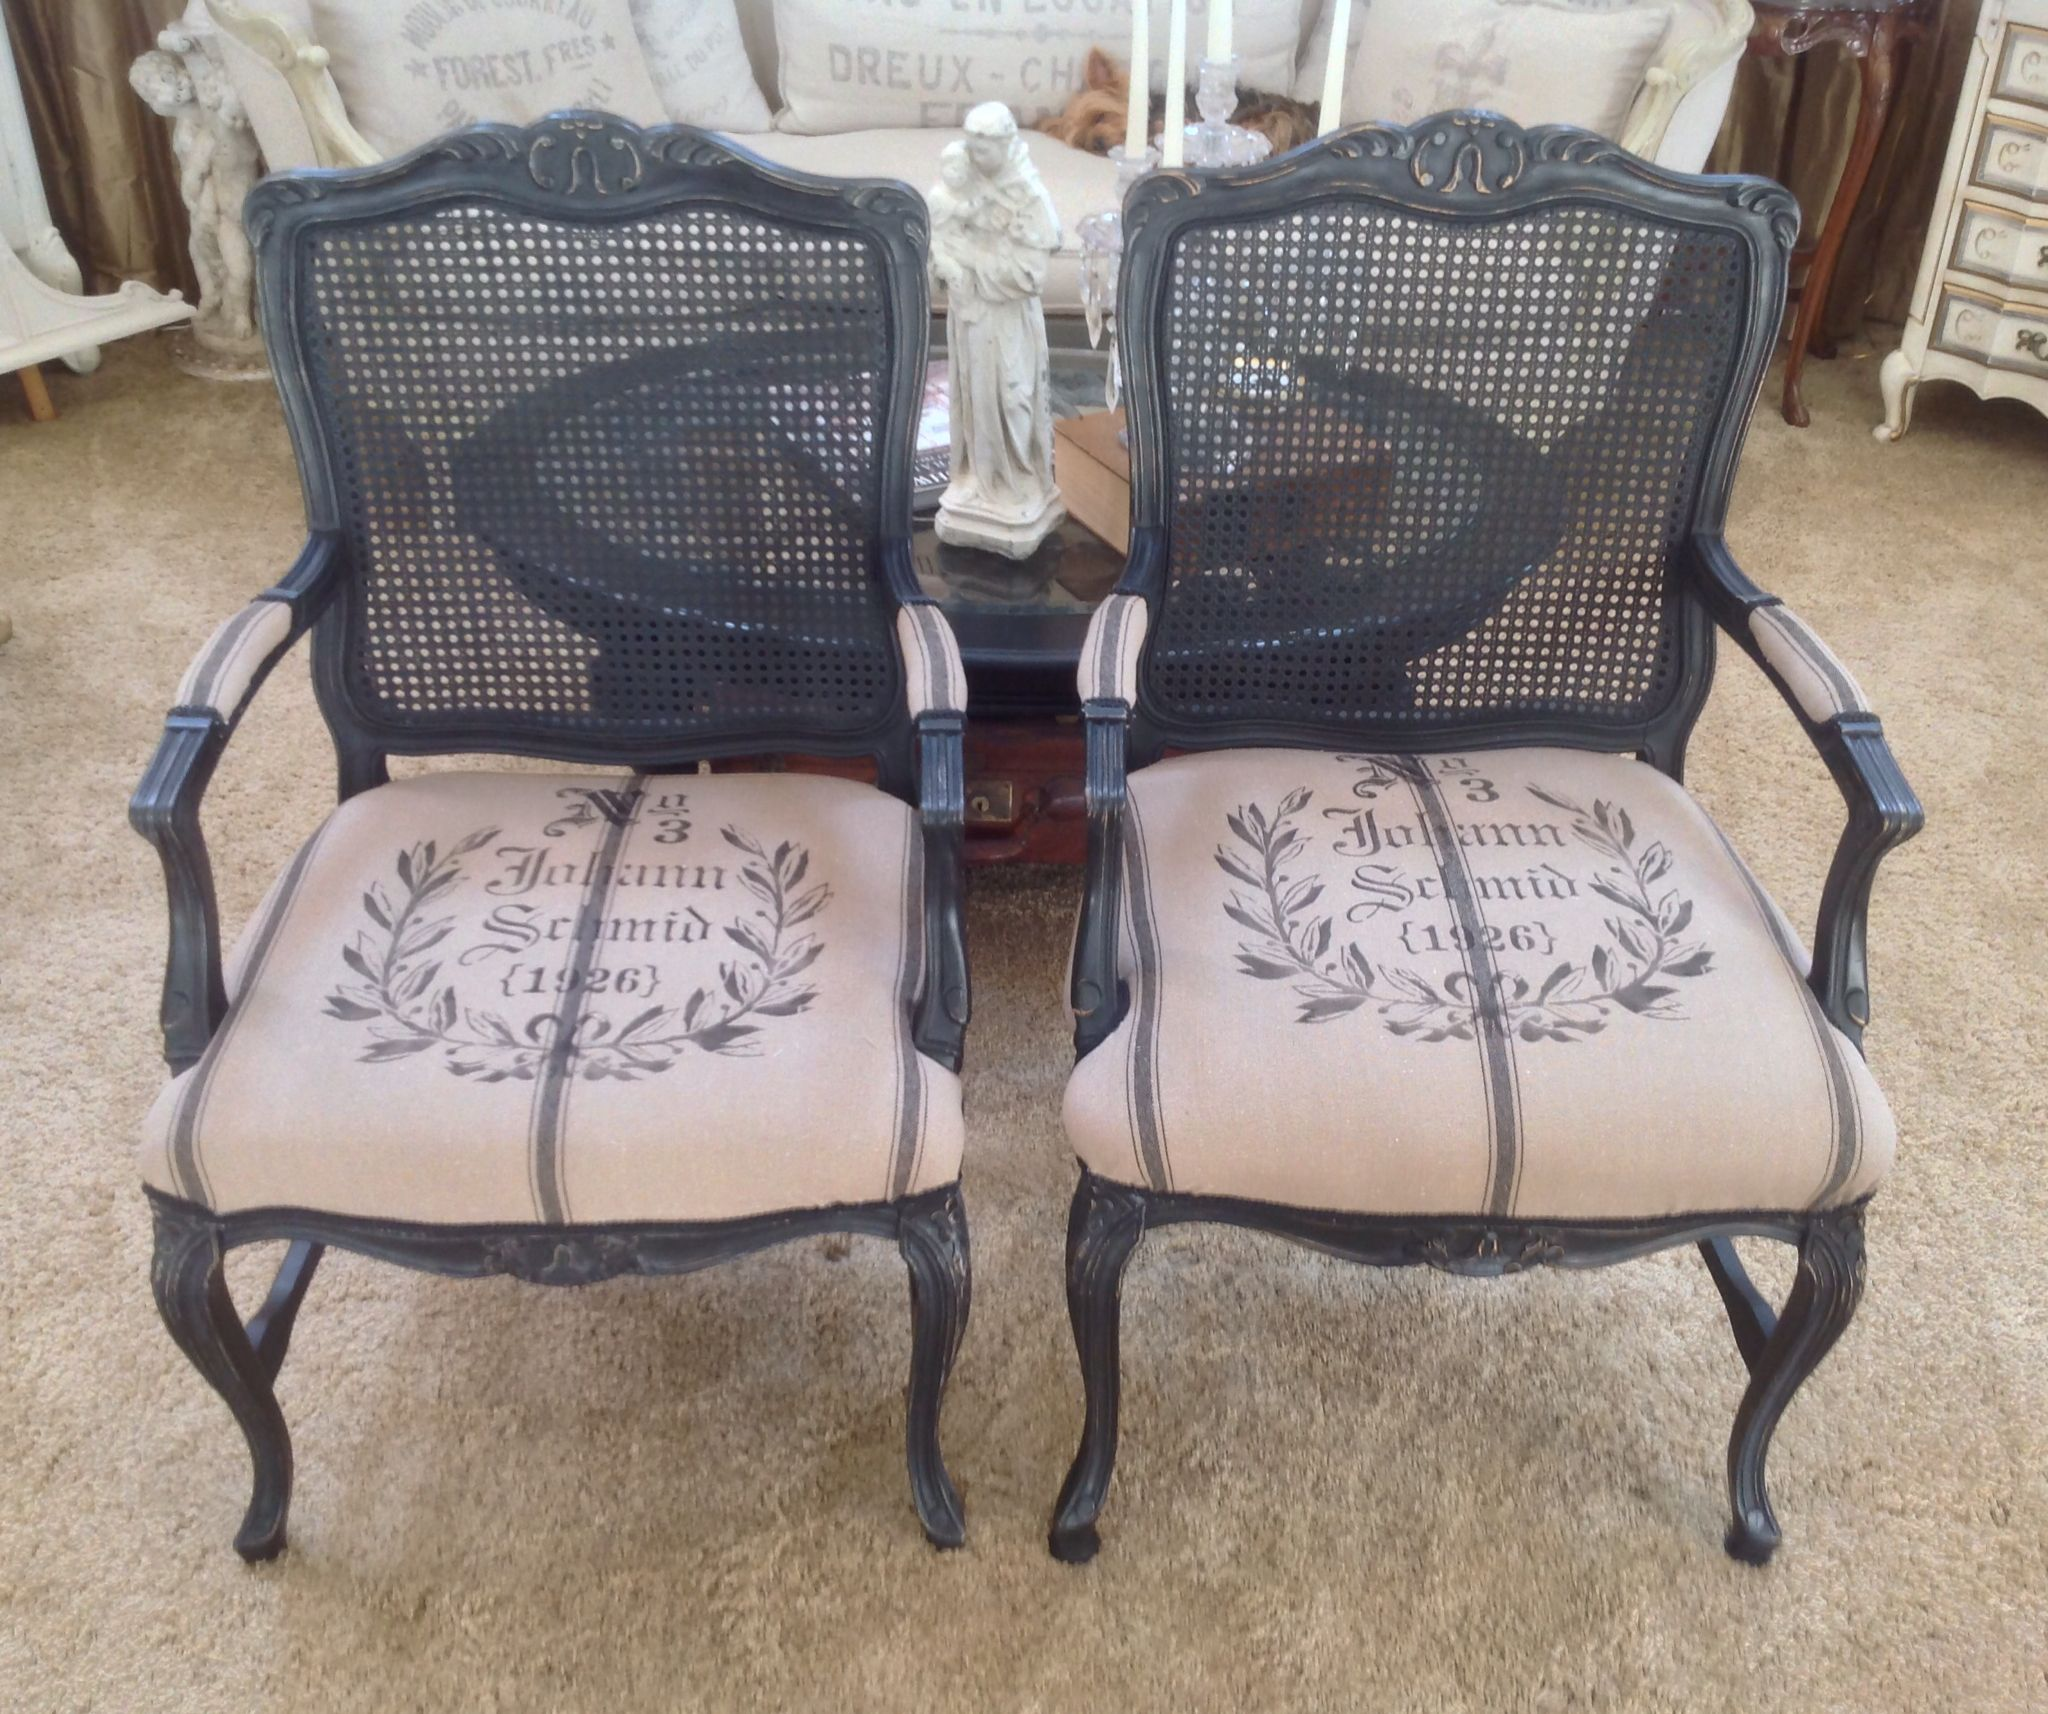 Antique cane chair styles - French Style Cane Chairs After Spray Painted With Flat Black Distressed Recovered With New